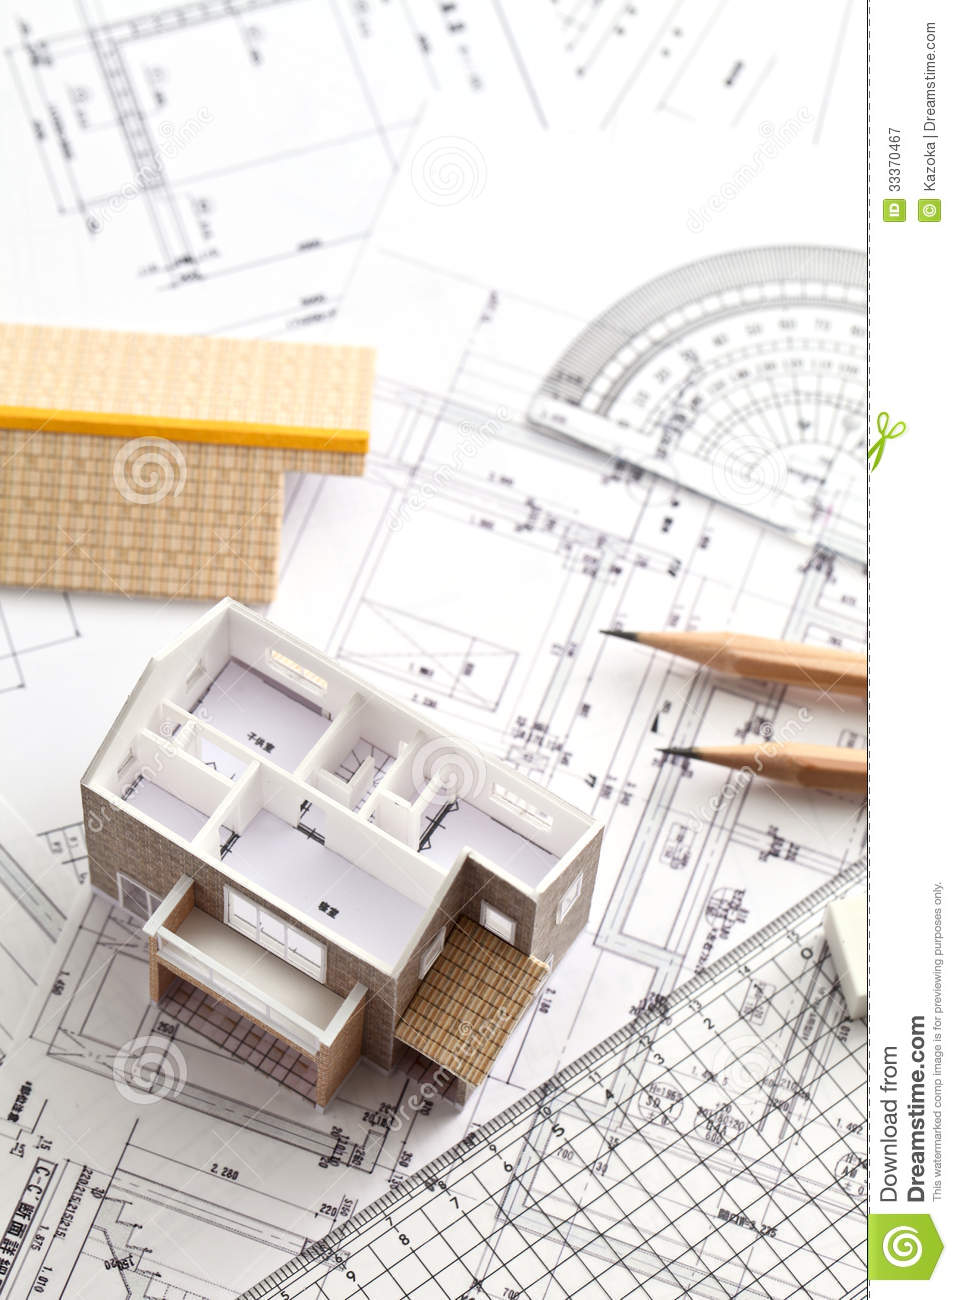 House design drawing stock image image of dwelling for Design your own metal building home